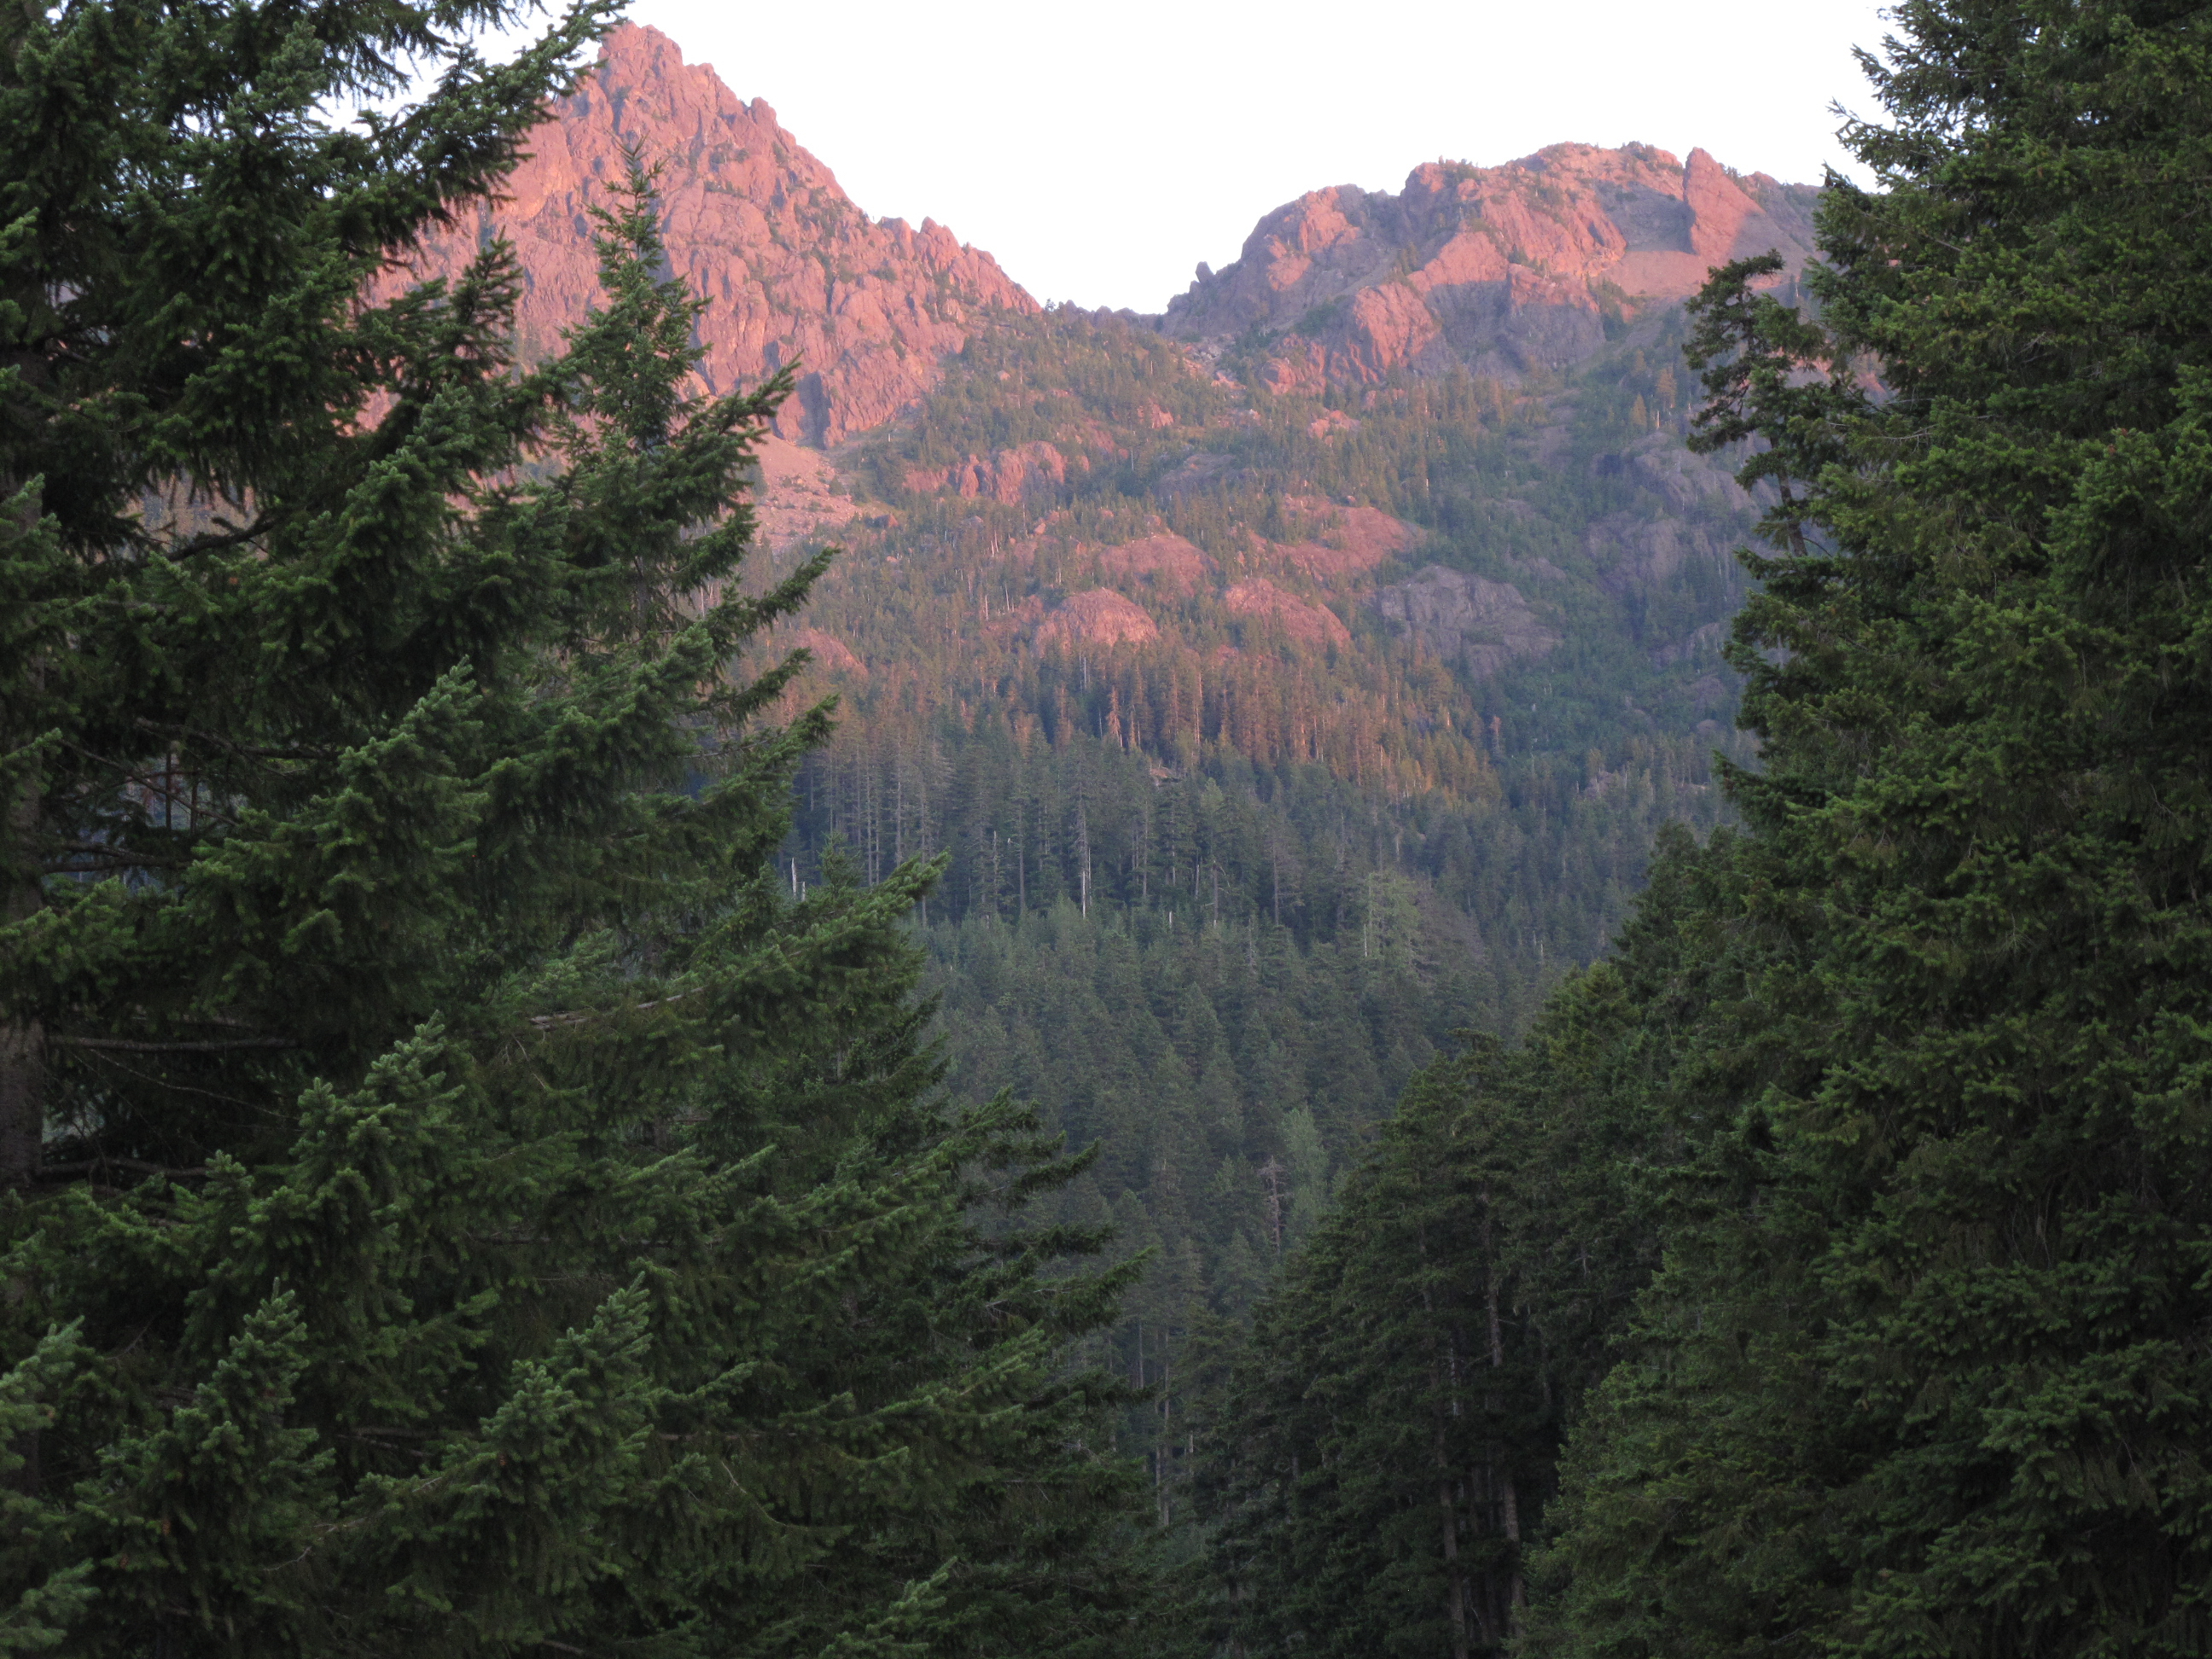 mountain view between trees